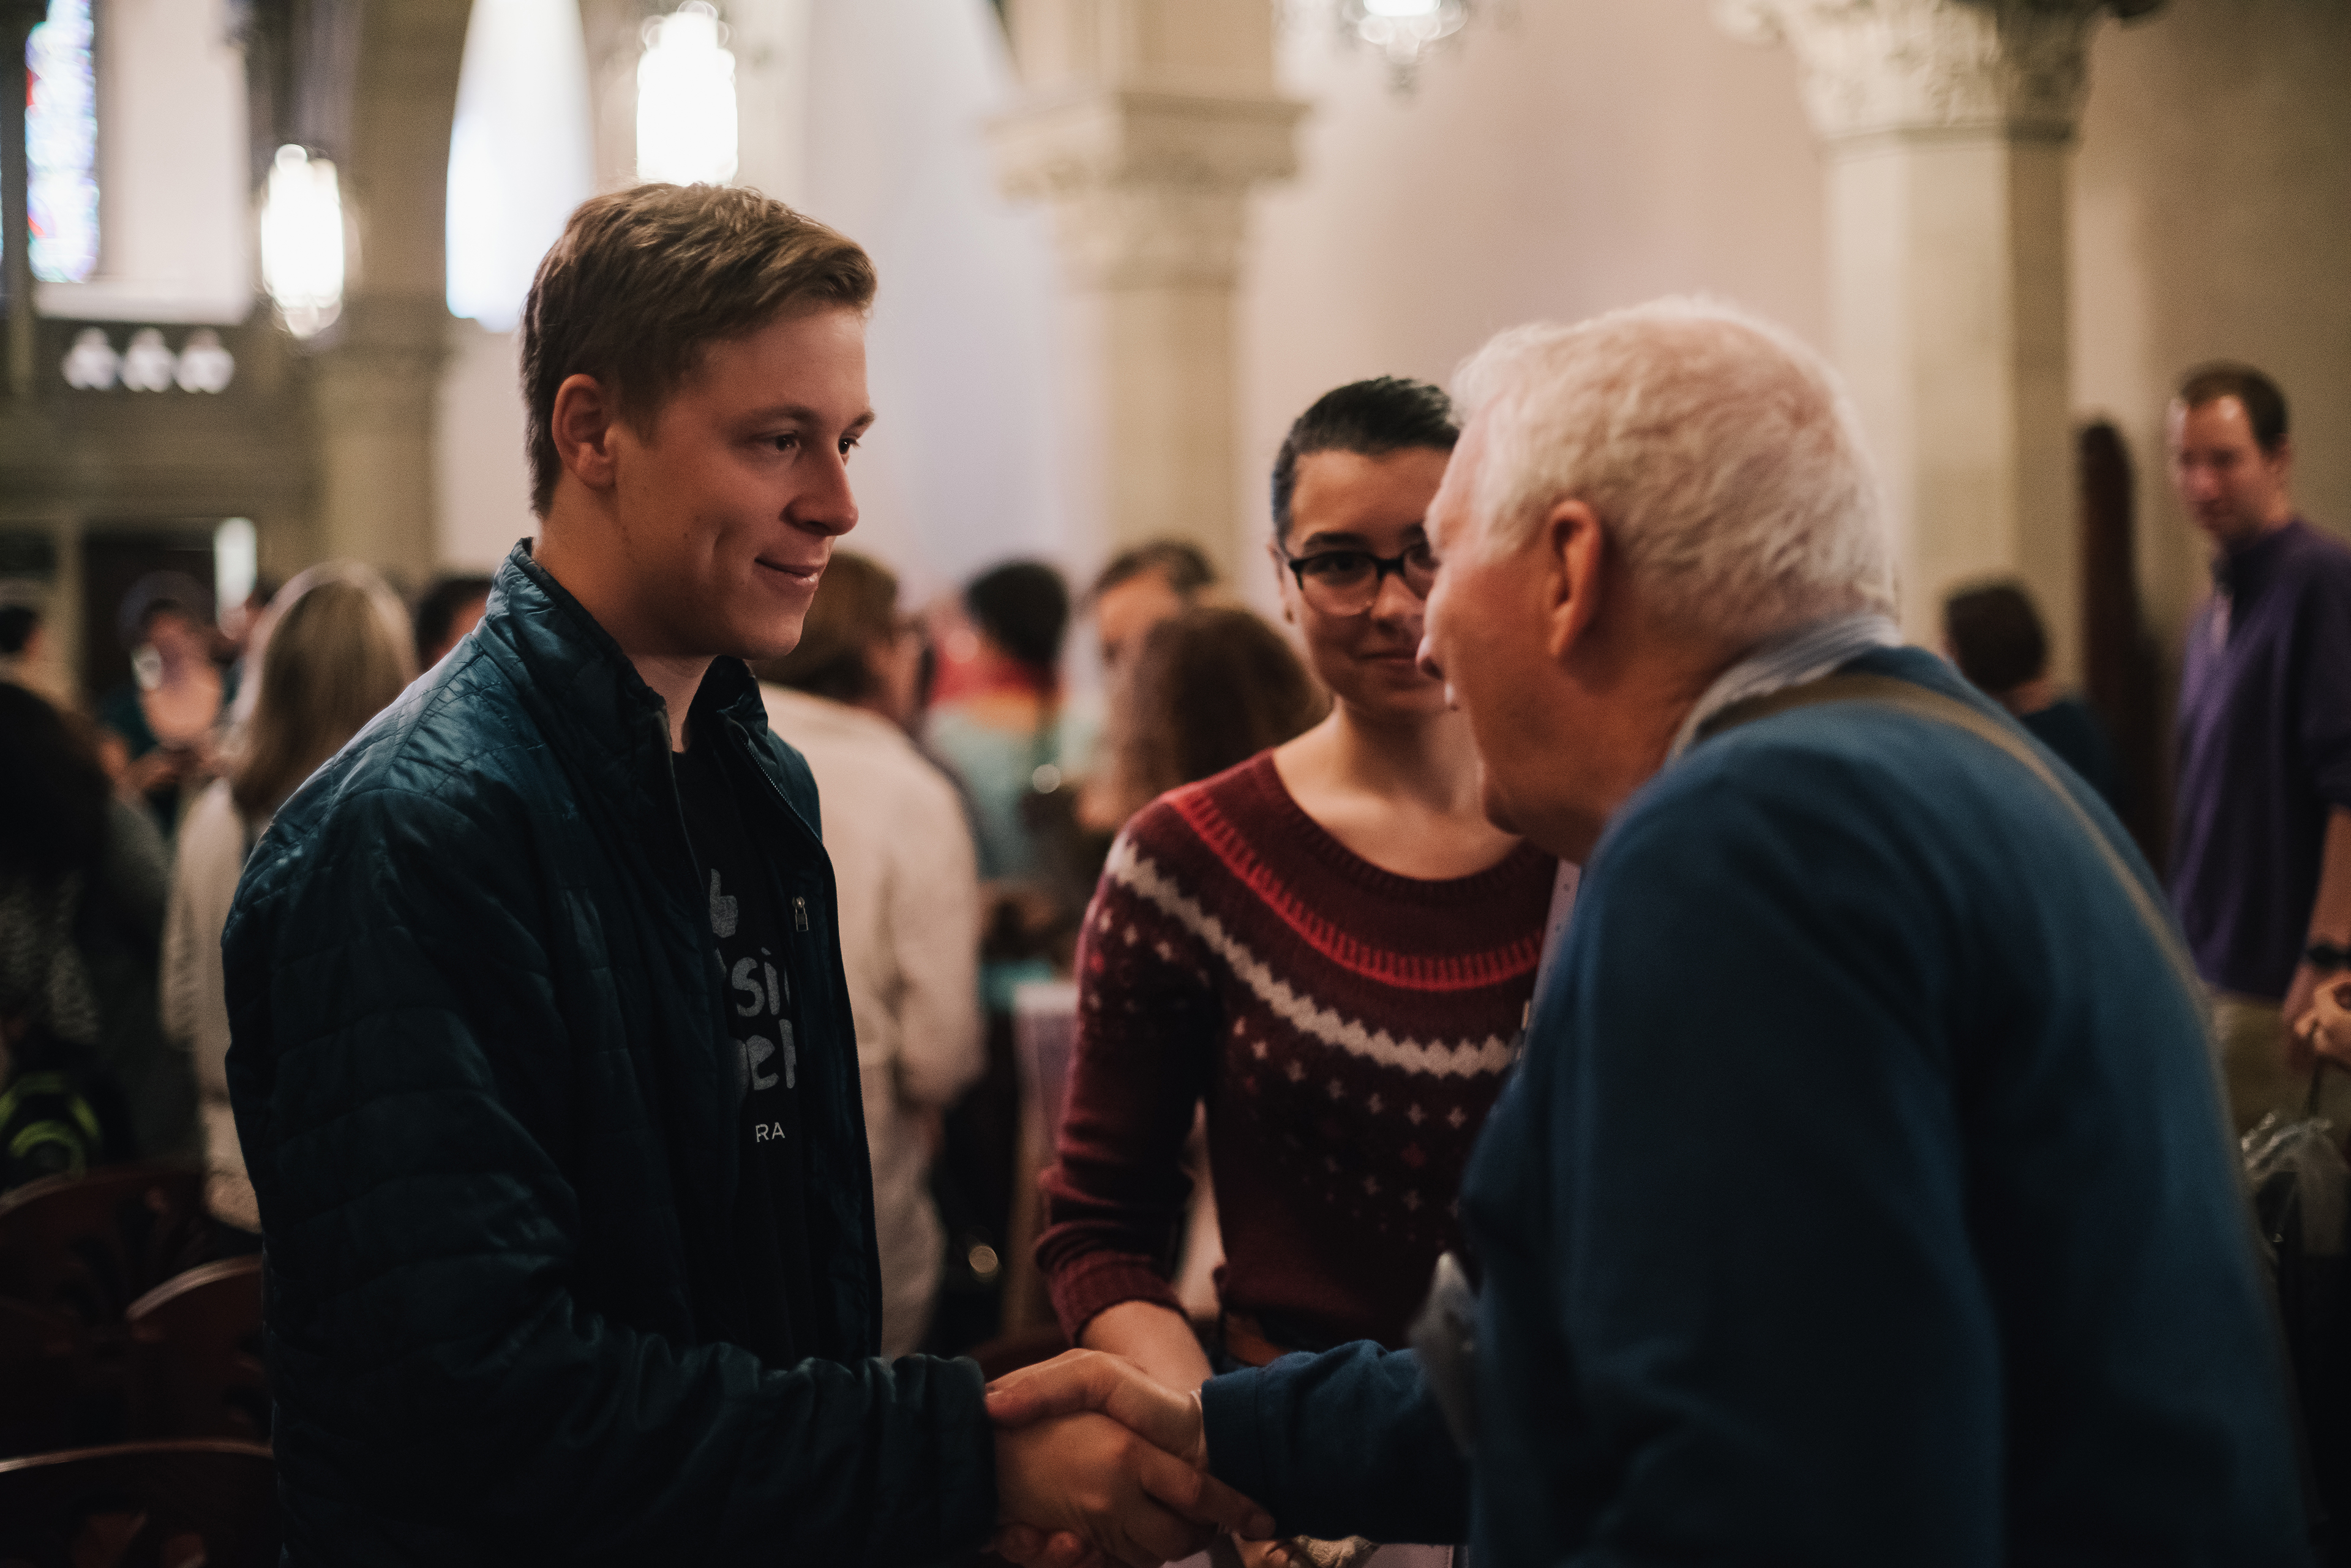 A young man and an older man greet each other and shake hands during Jazz Worship at Old South Church